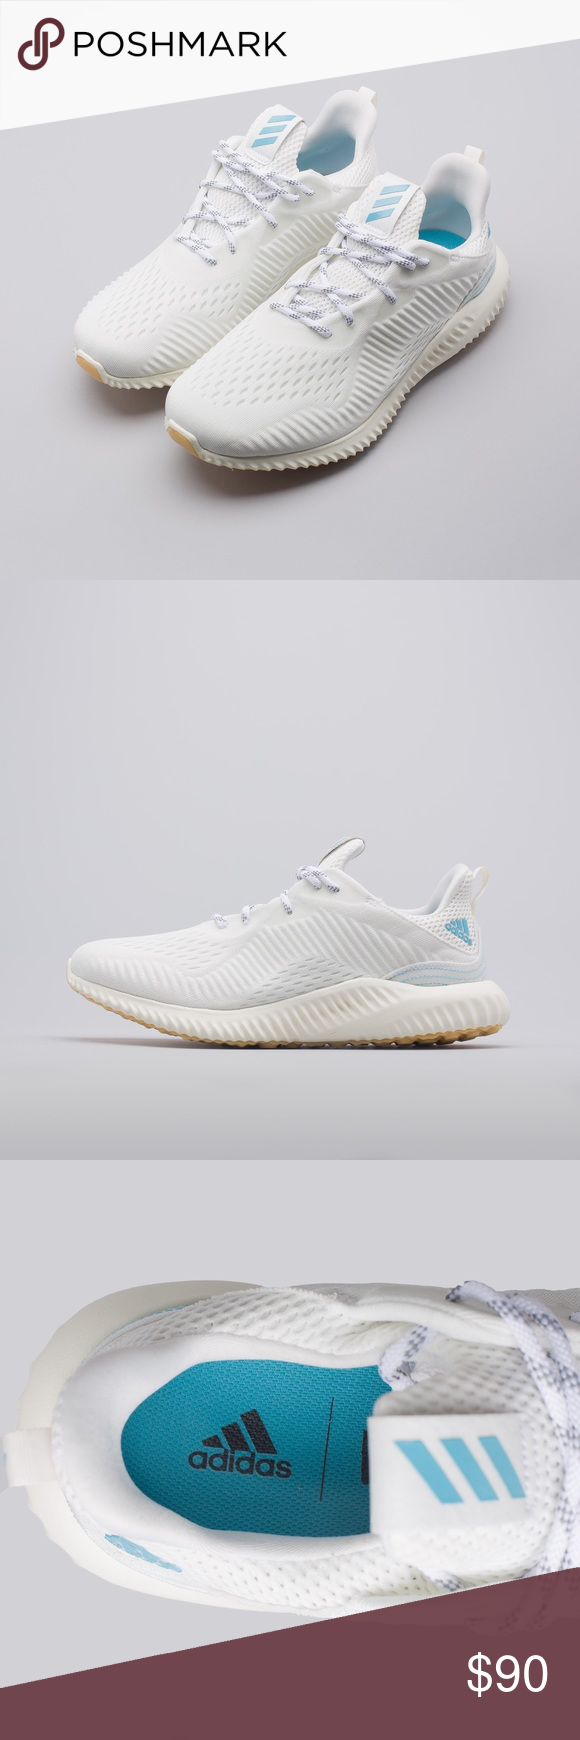 a6a4a628d4134 Adidas Alphabounce 1 Parley White Blue - DA9992 BRAND NEW AUTHENTIC ALPHABOUNCE  1 PARLEY SHOES